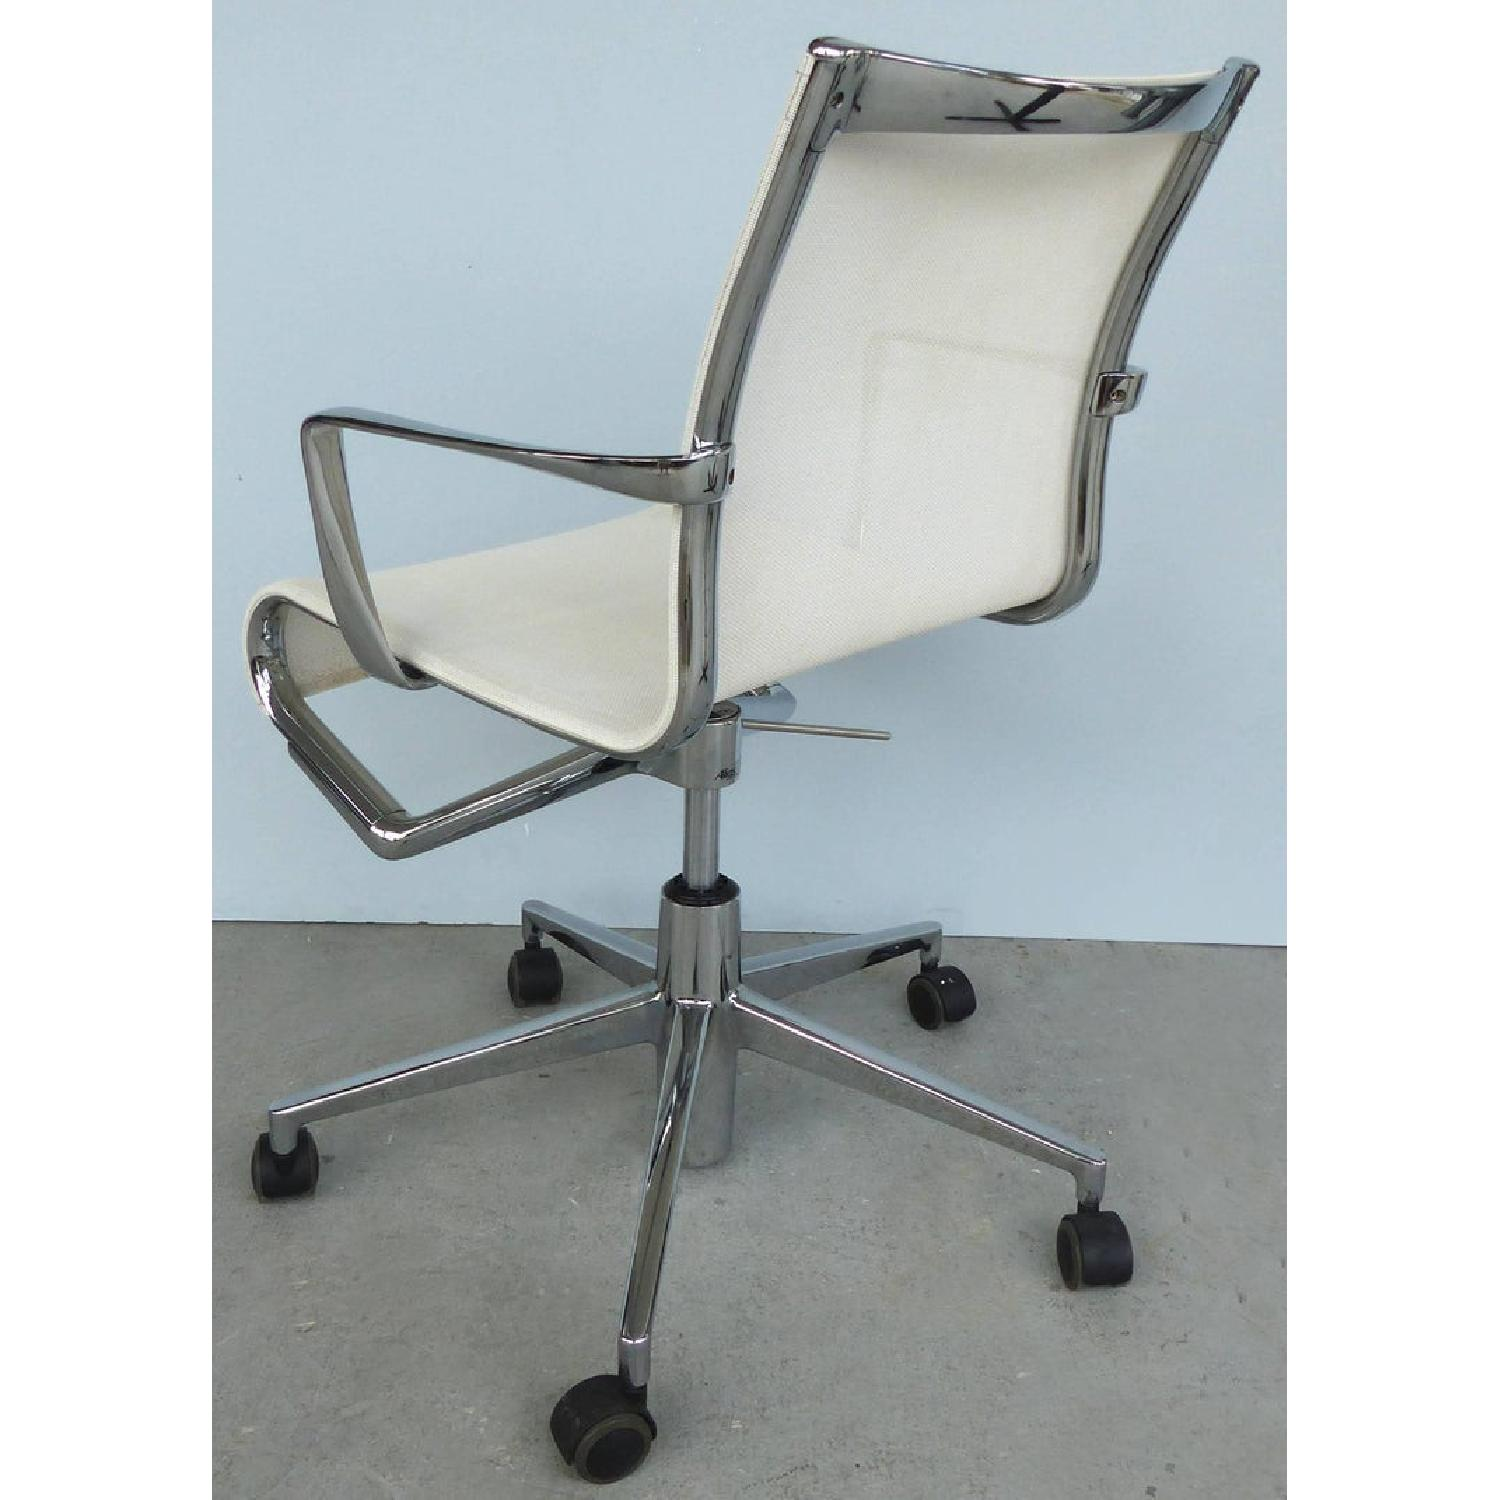 Kartell Alberto Meda Rolling Office Chairs - image-7